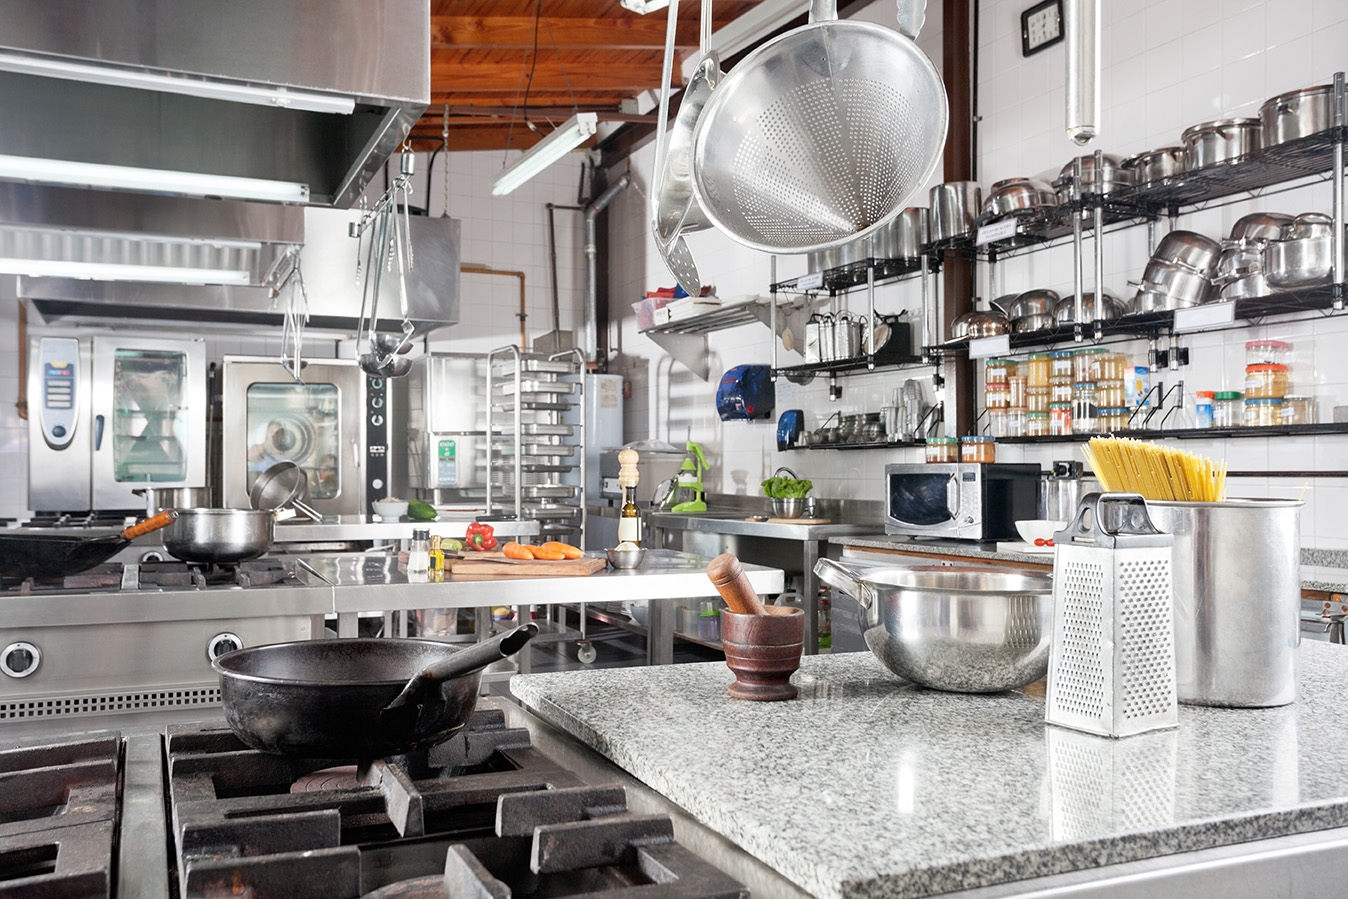 Restaurant Kitchen Design And Food Safety